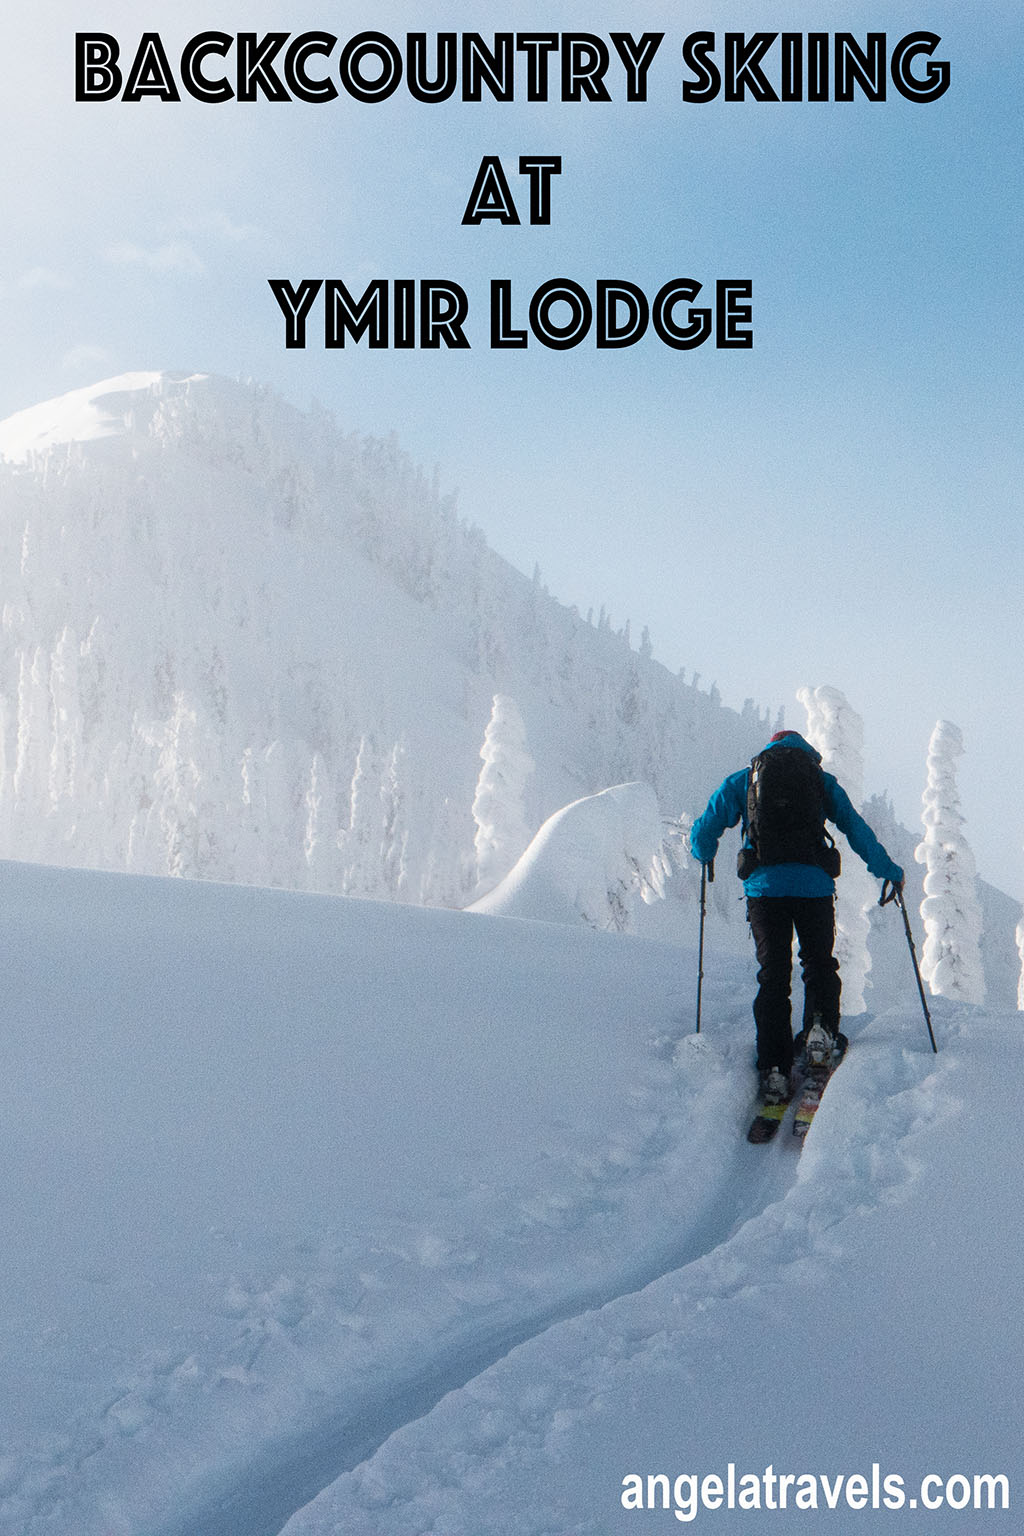 Trip Report: Backcountry Skiing at Ymir, British Columbia